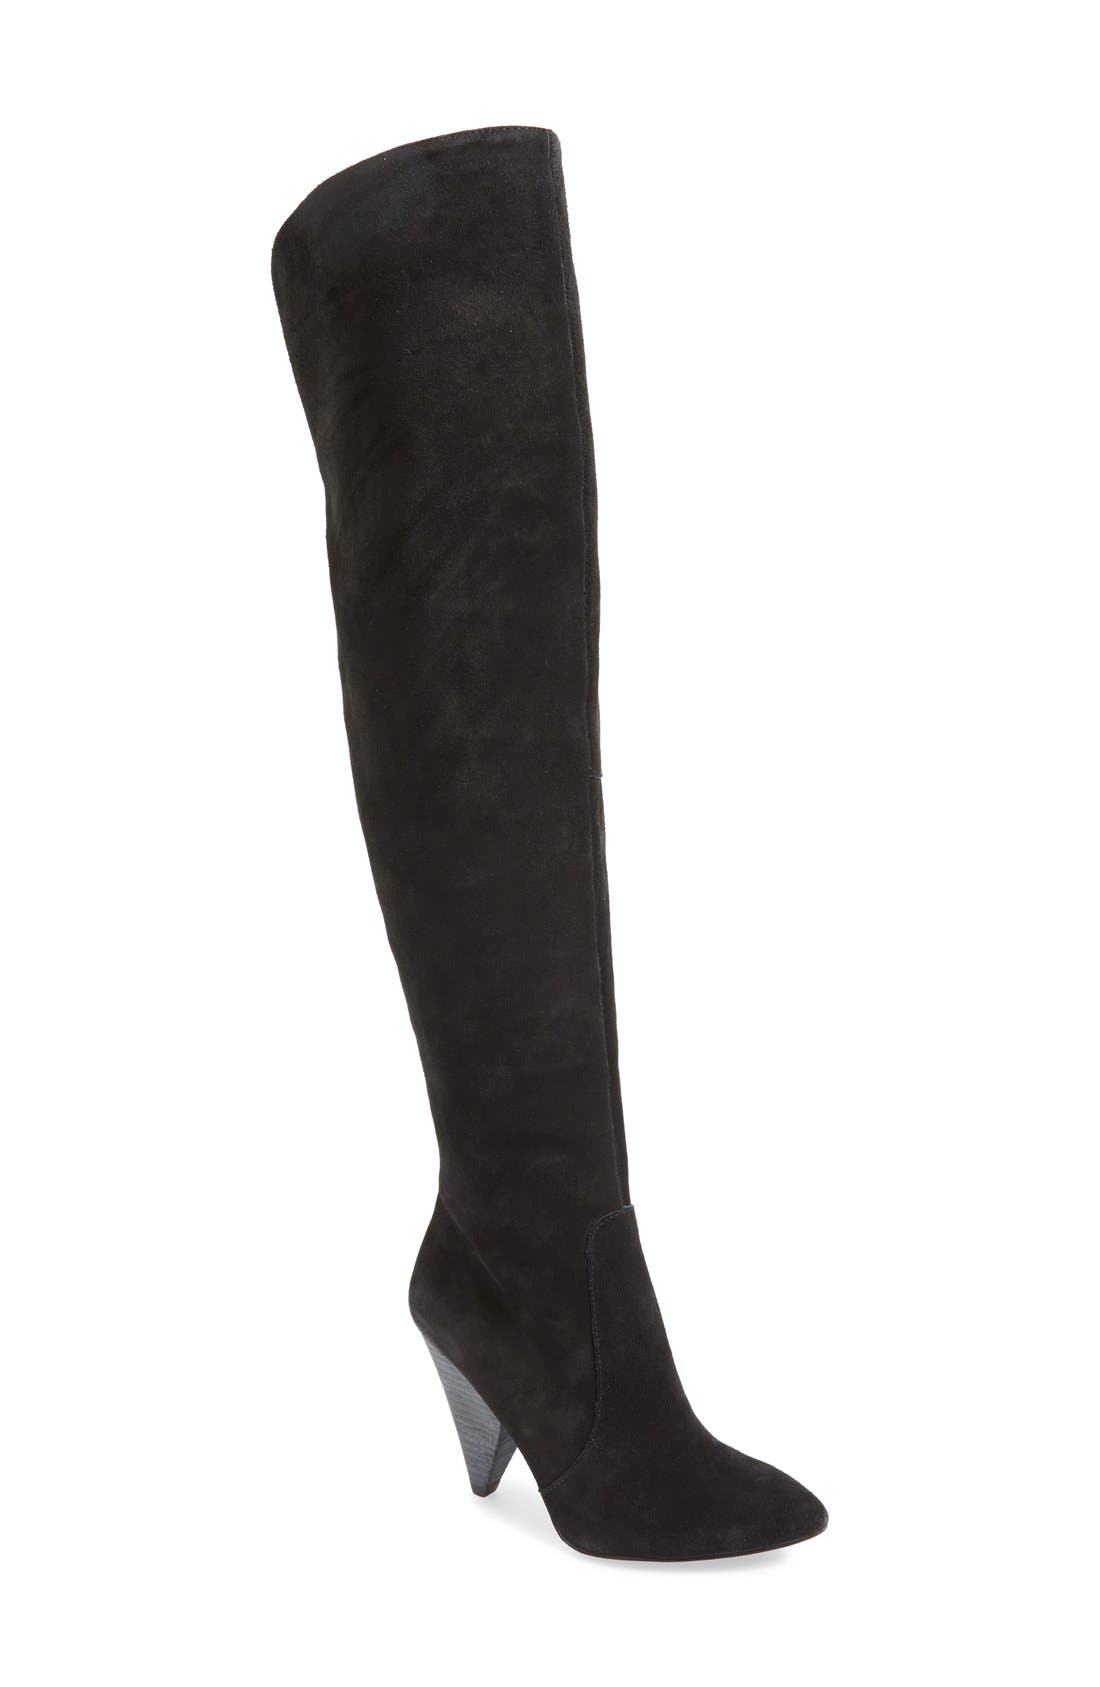 Main Image - Vince Camuto 'Hollie' Over the Knee Pointy Toe Suede Boot (Women)